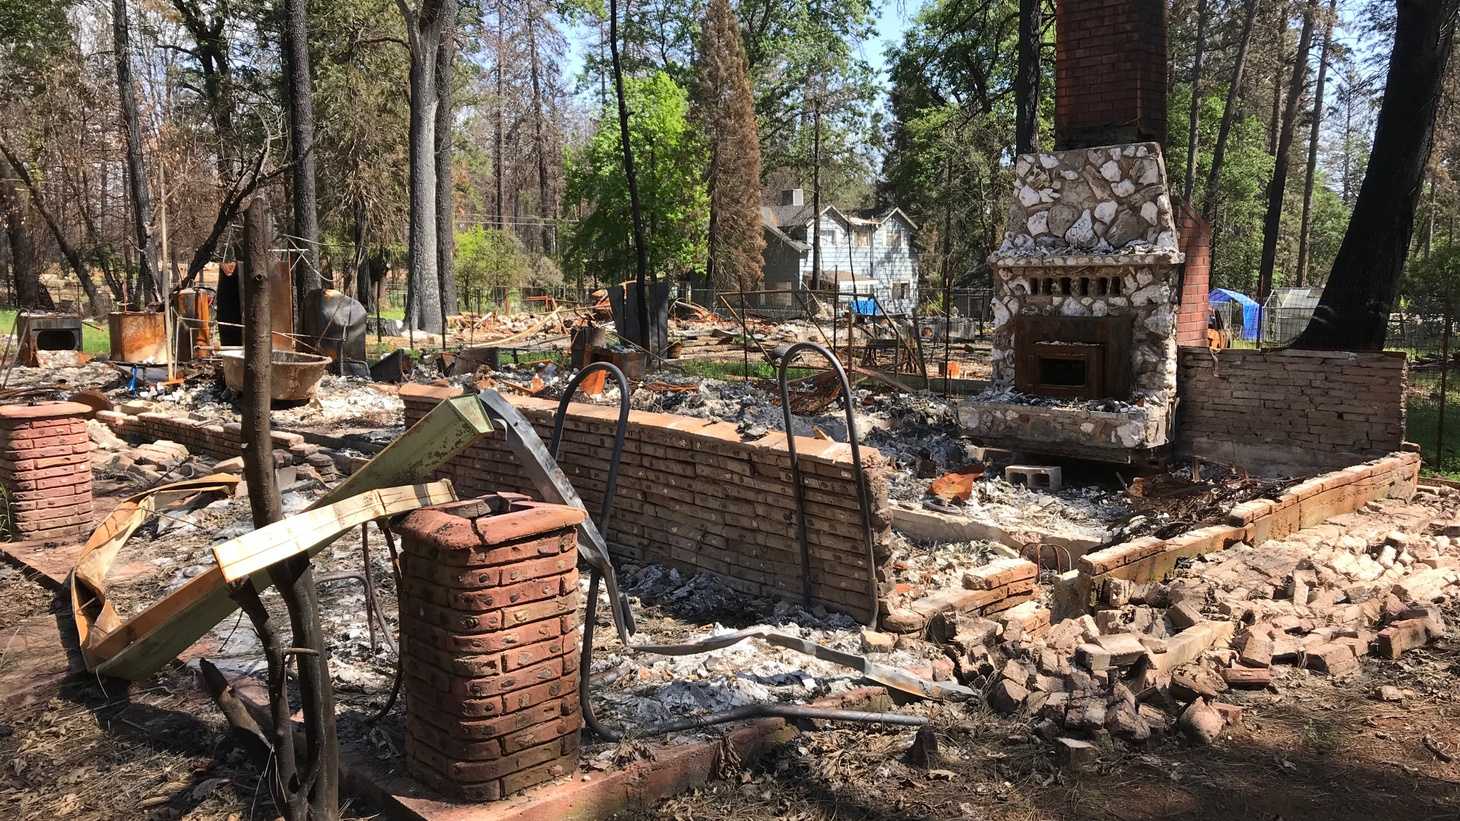 Damage from the Camp Fire.